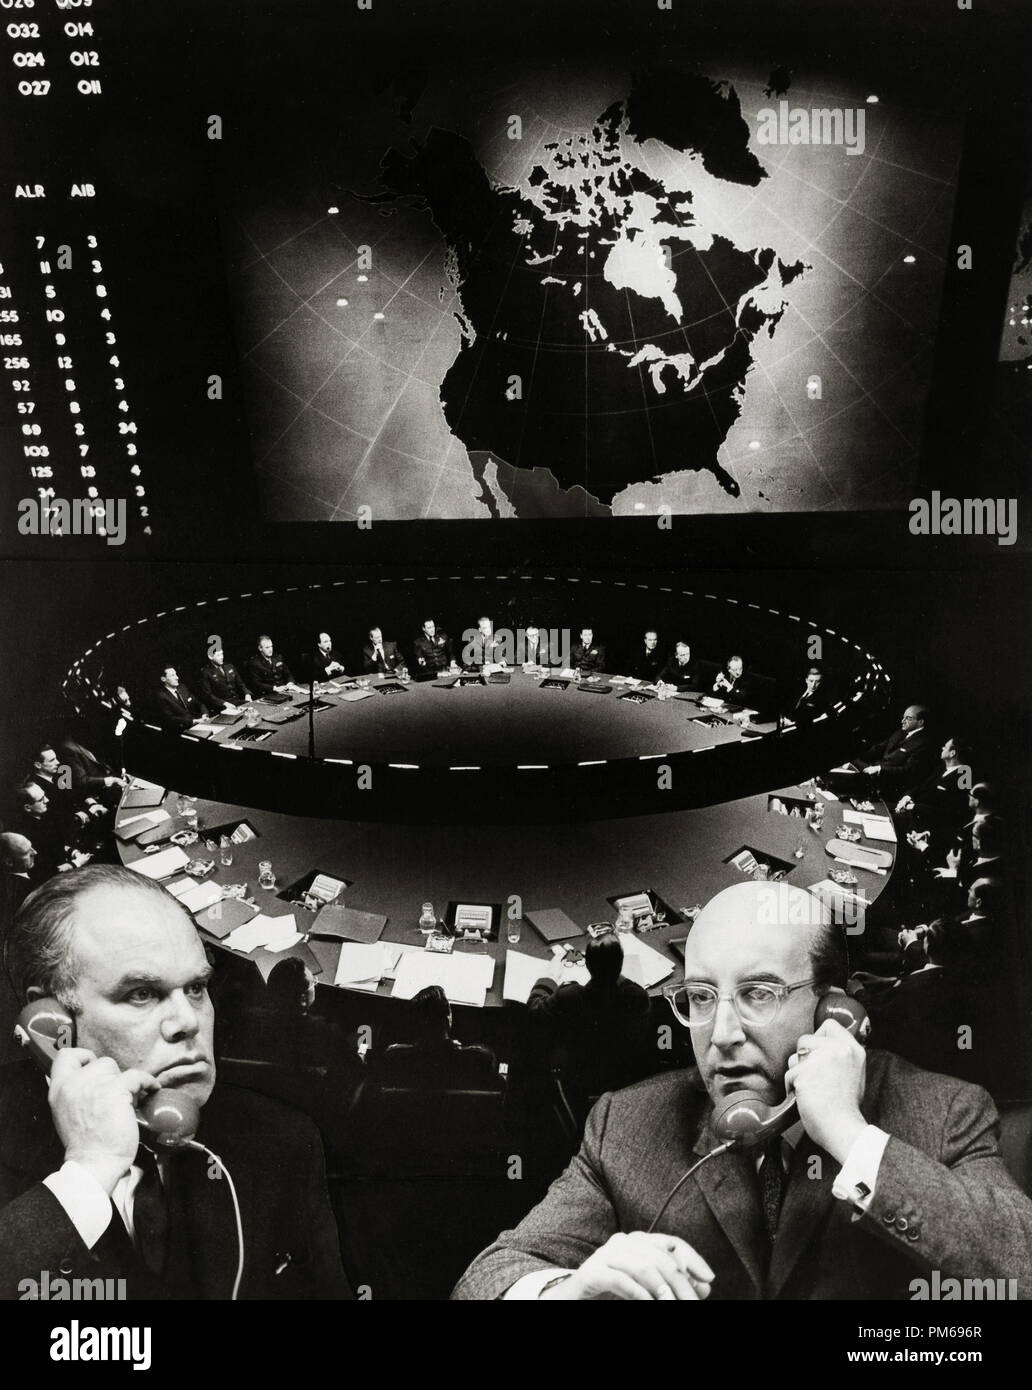 Peter Bull and Peter Sellers, 'Dr. Strangelove or: How I Learned to Stop Worrying and Love the Bomb' 1964 Columbia   File Reference # 31316_176THA - Stock Image